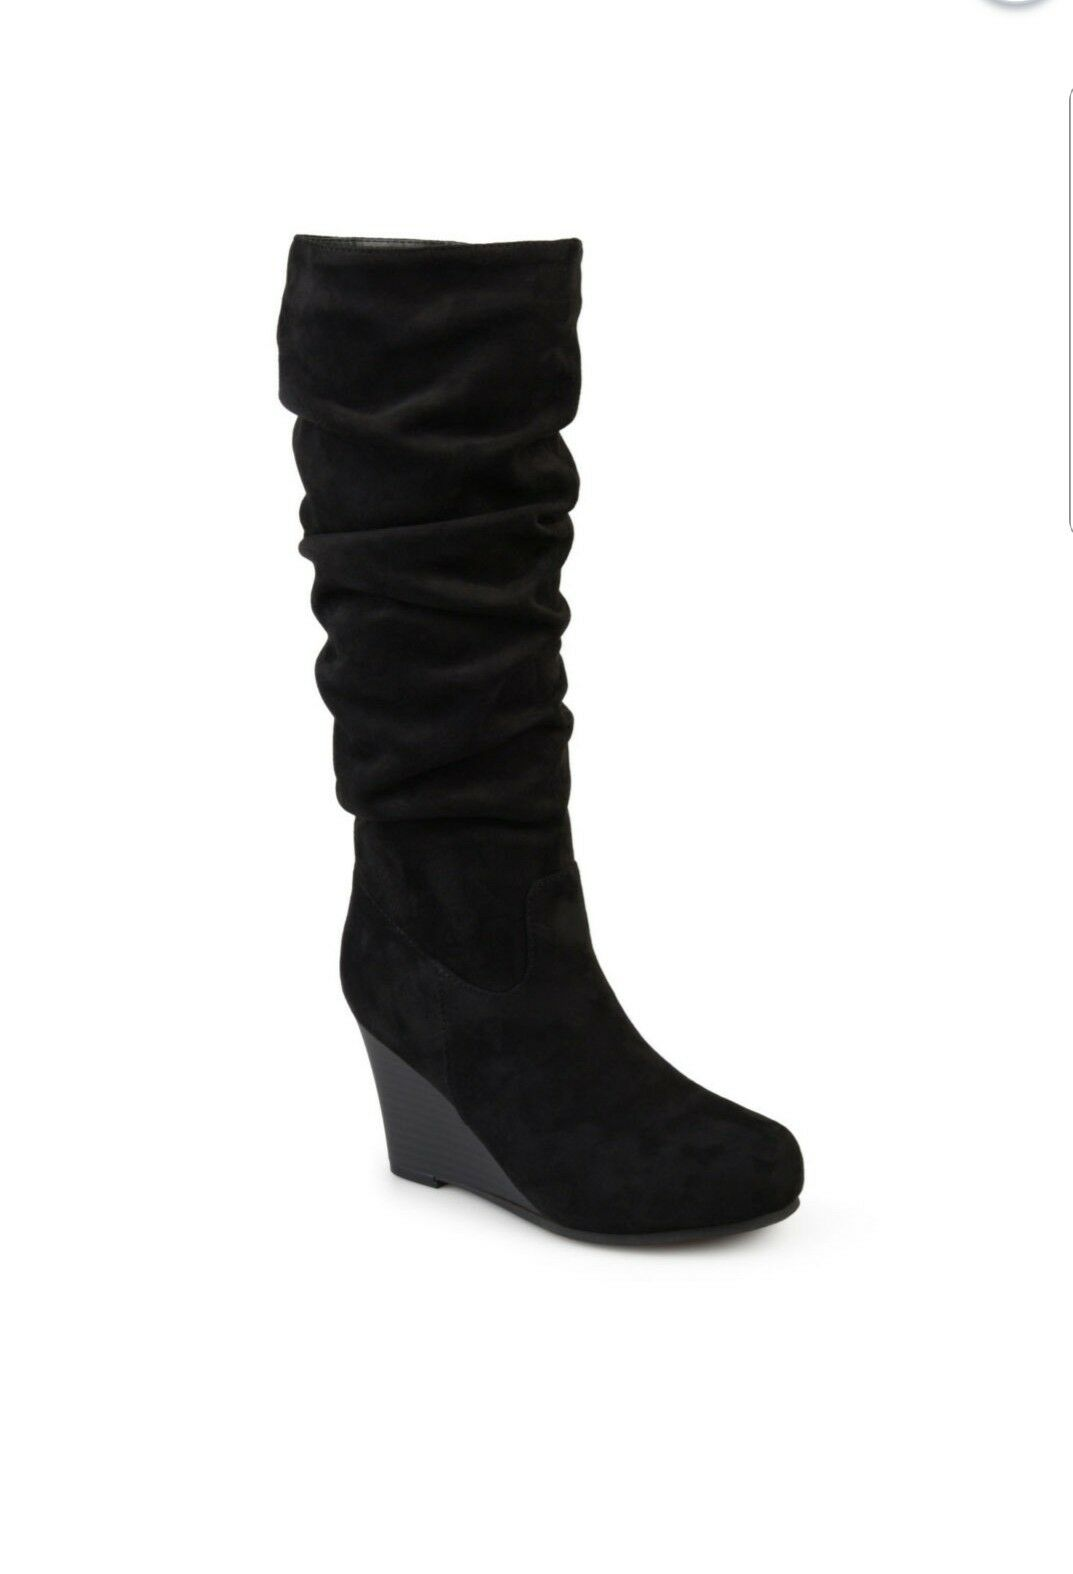 New Womens Journee Collection Slouch Boots Wedge Black 9 Faux Suede